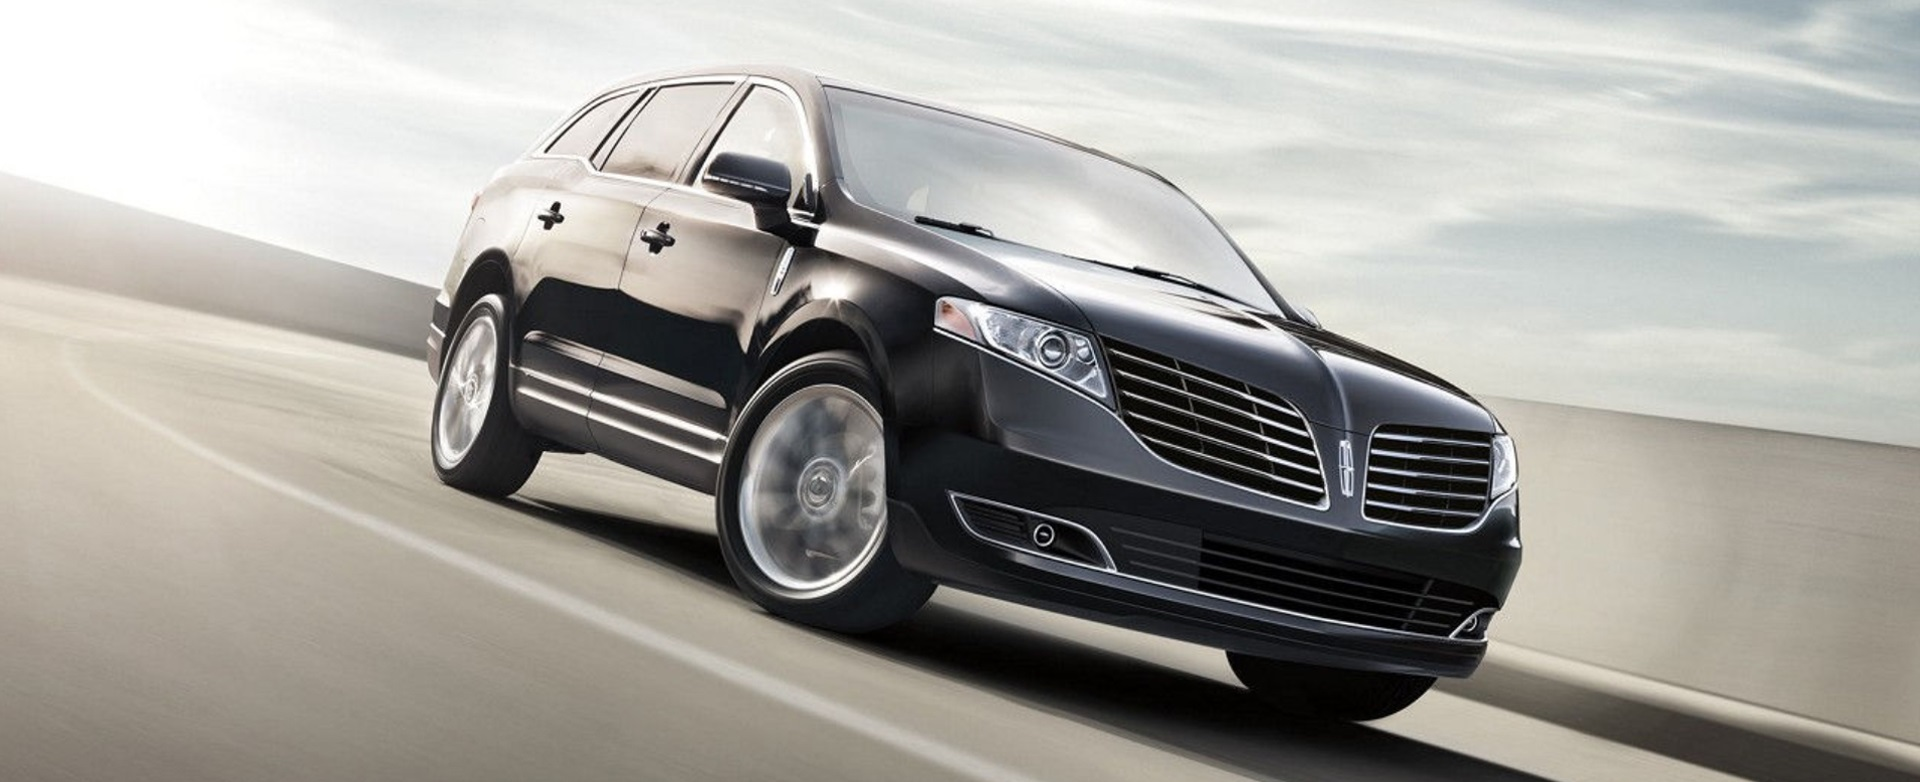 2016 Town Car >> The New Mkt Series Town Car By All Star Limousine We Are Luxury